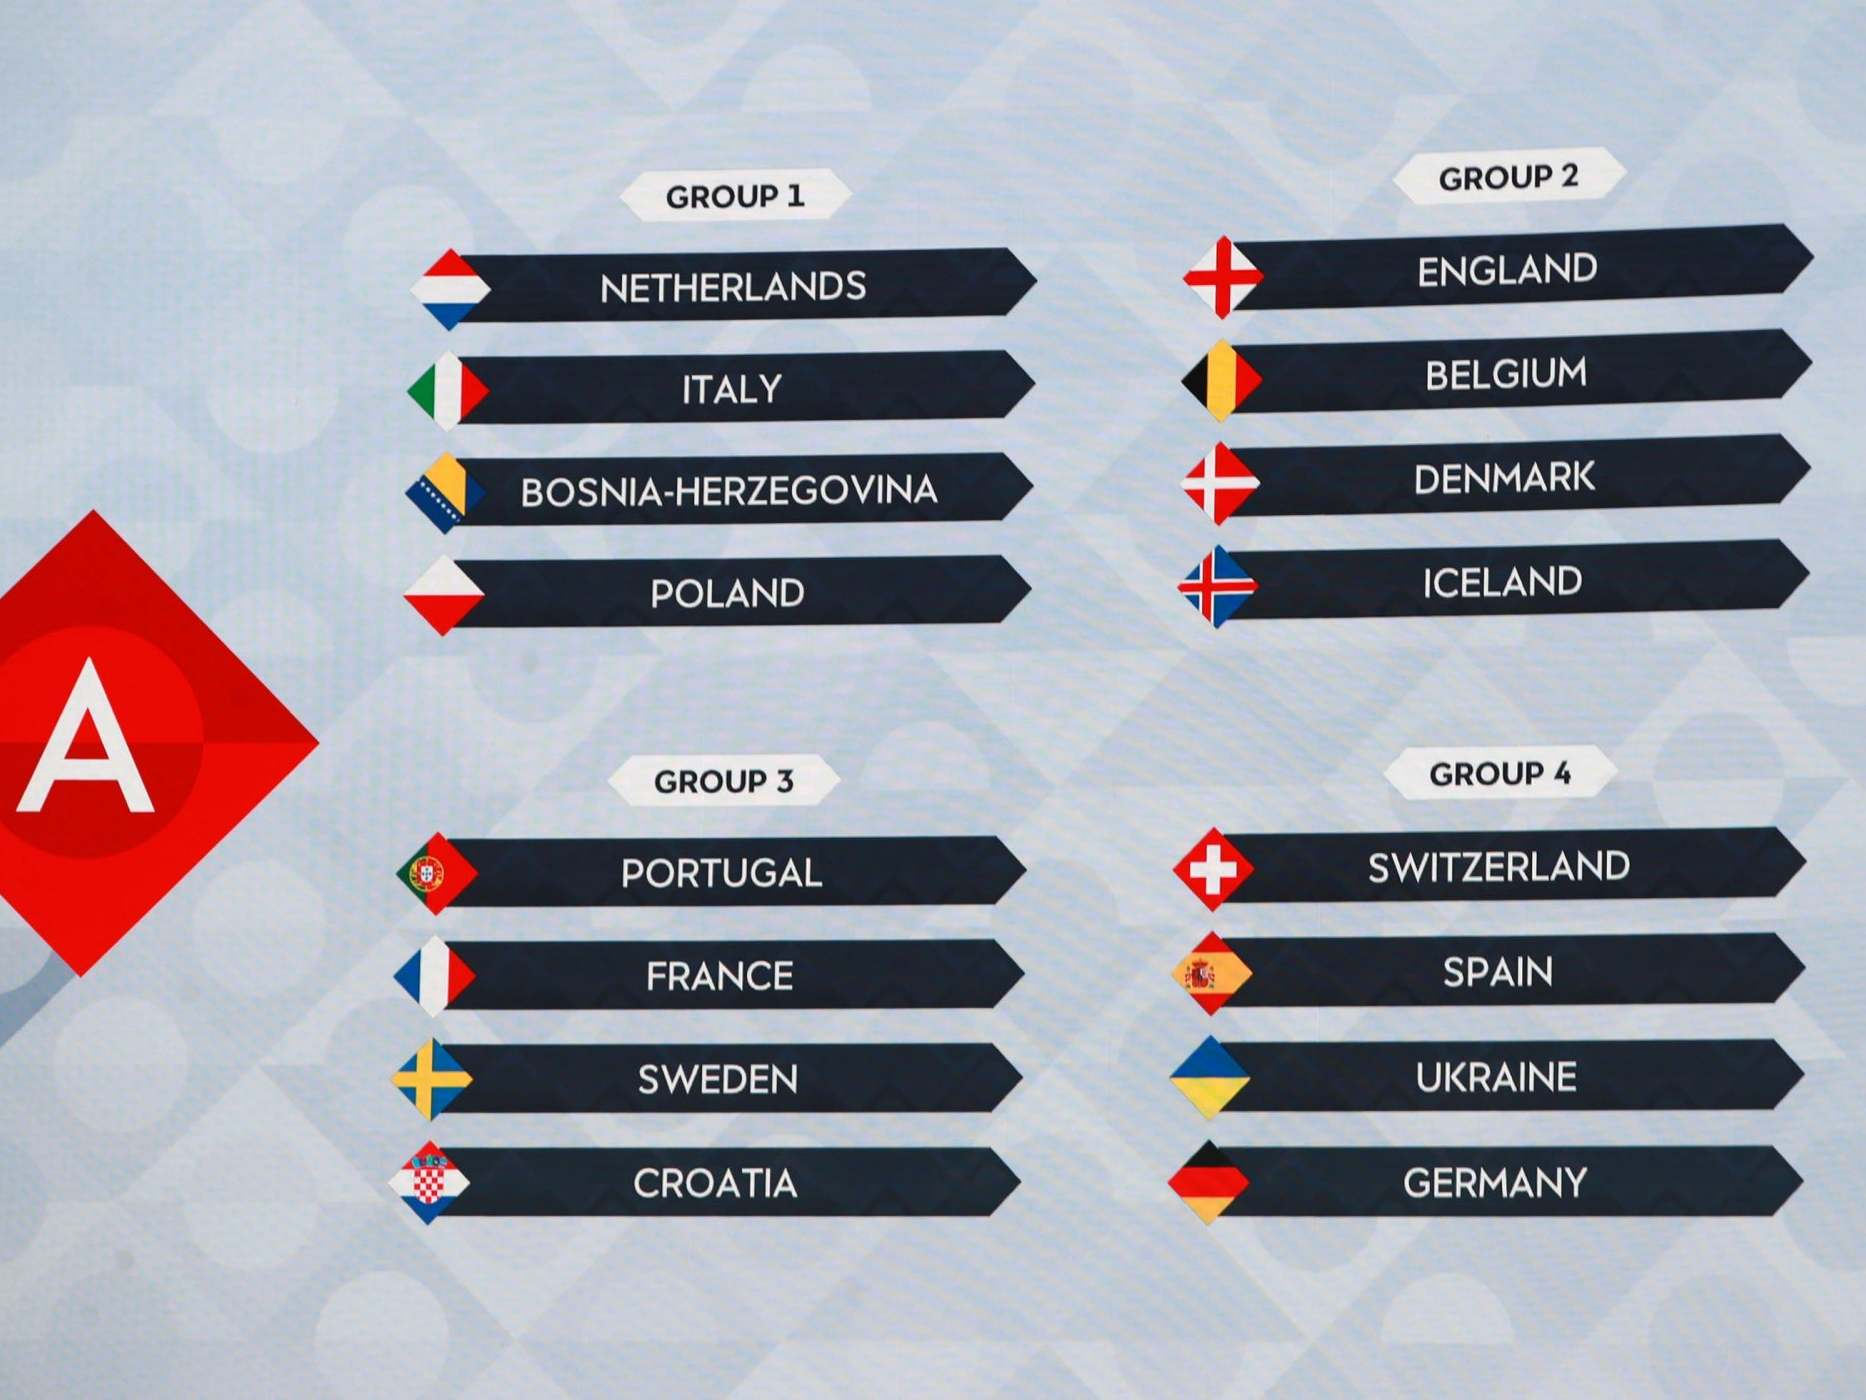 Uefa Nations League Draw England To Face Belgium Denmark And Iceland In Group Stage Crossfitshoesexpert Com